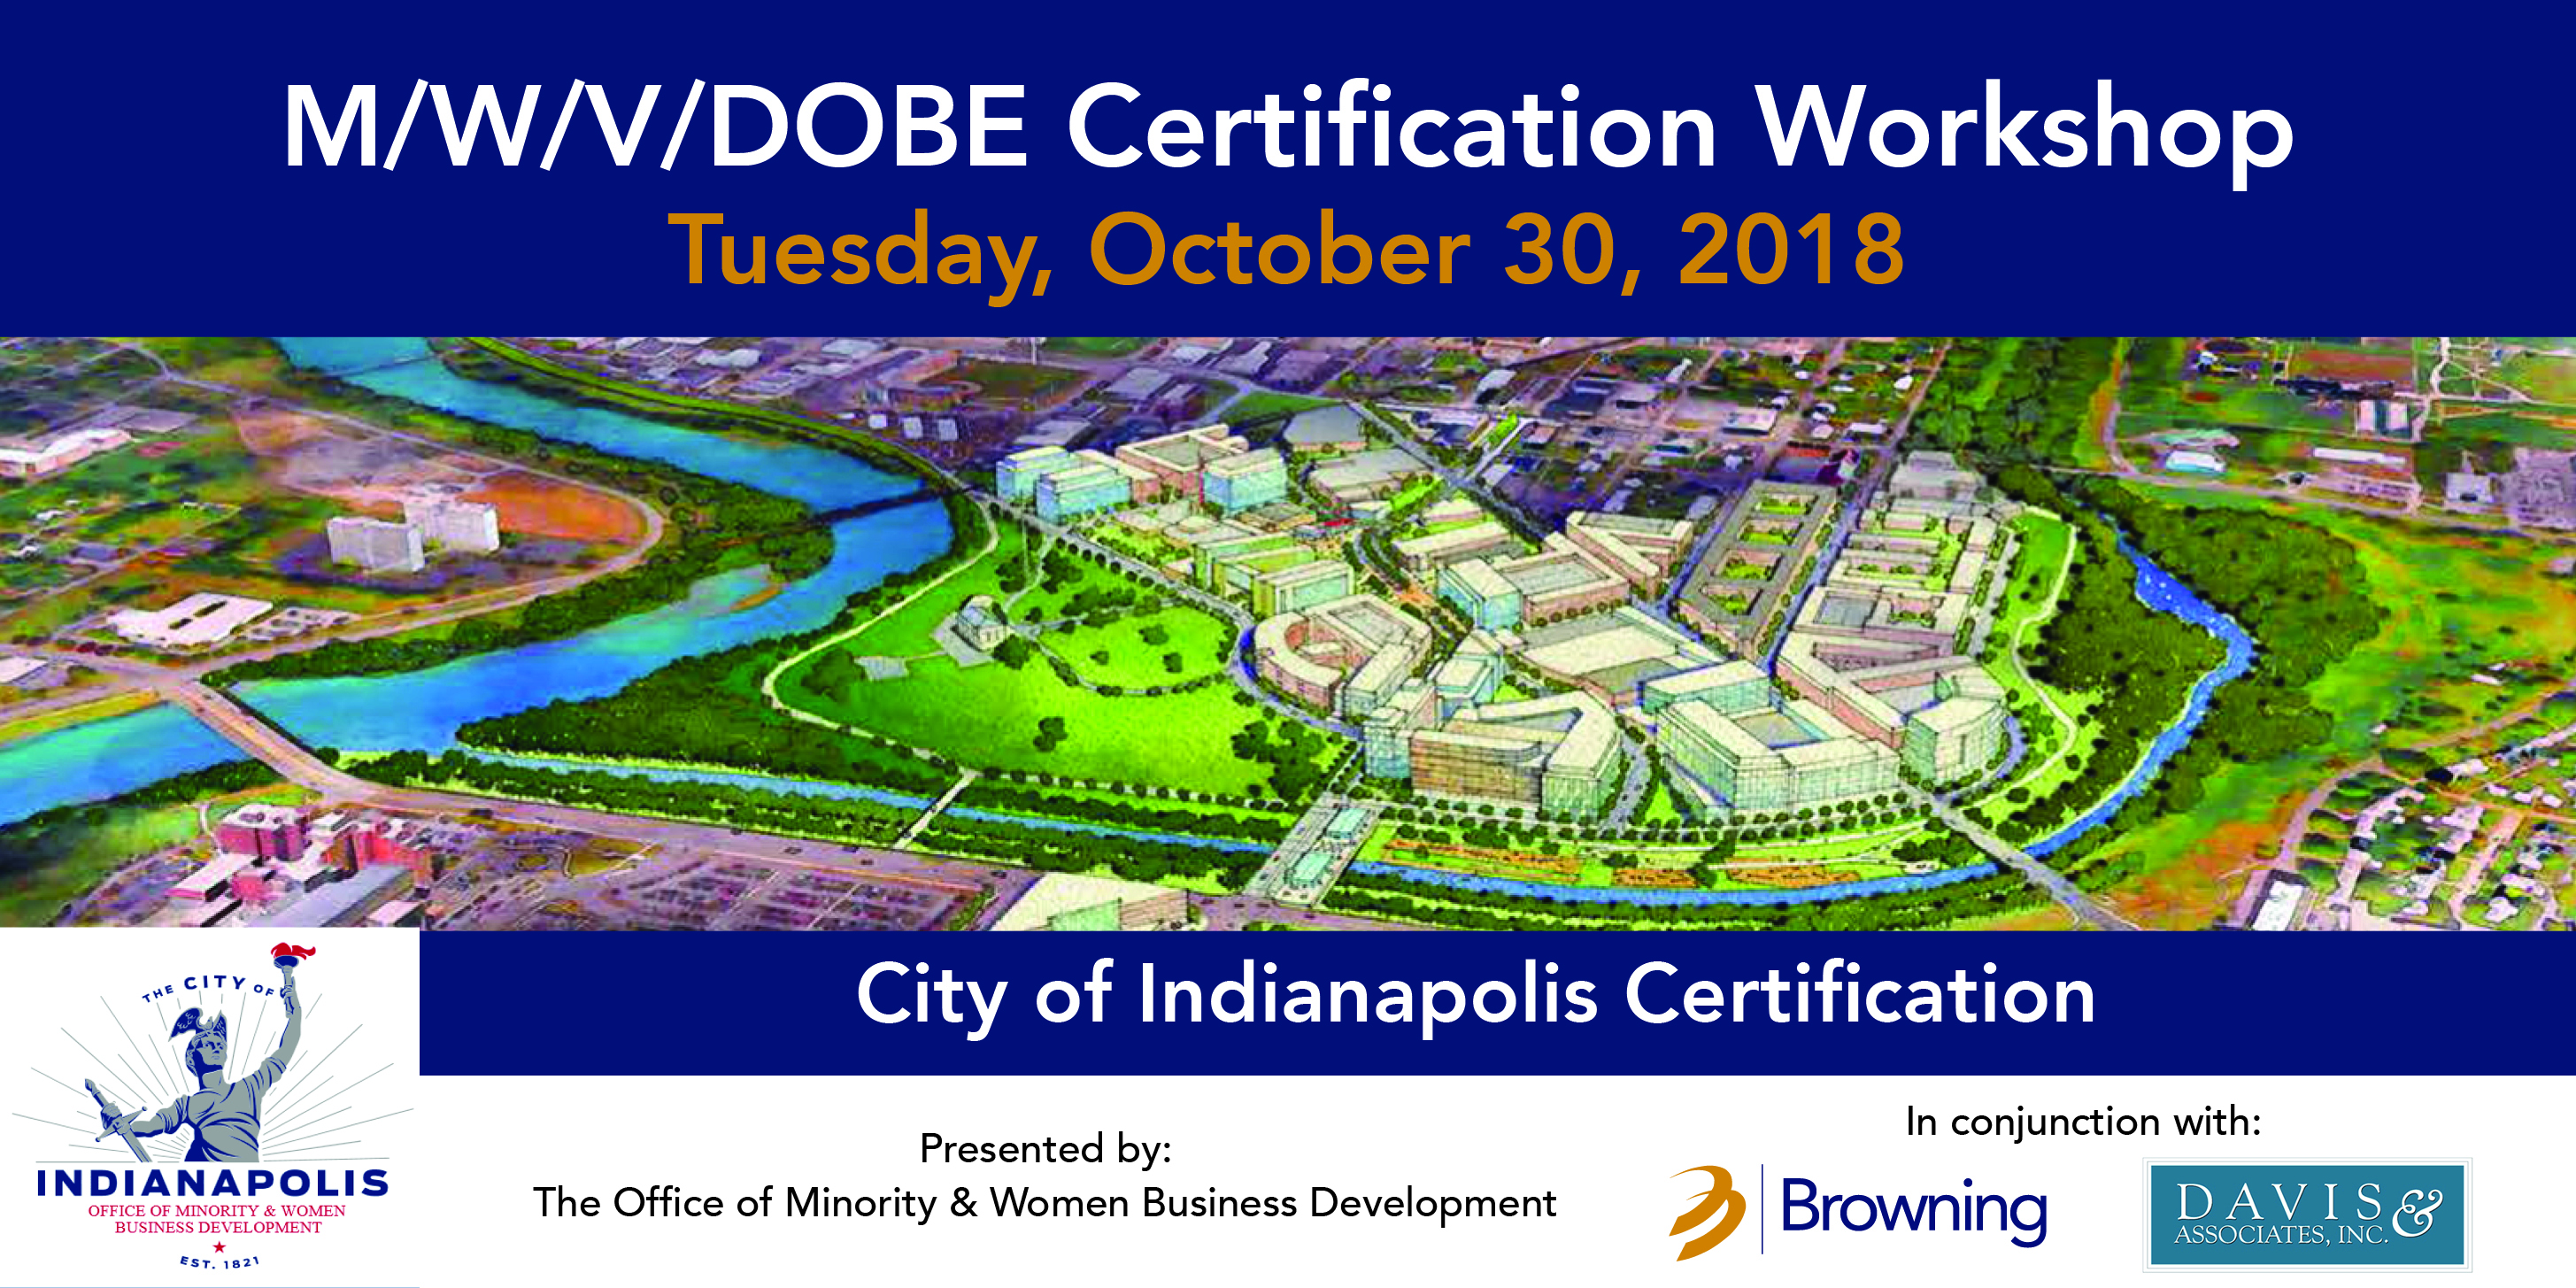 City Of Indianapolis Certification Workshop For Minority Woman